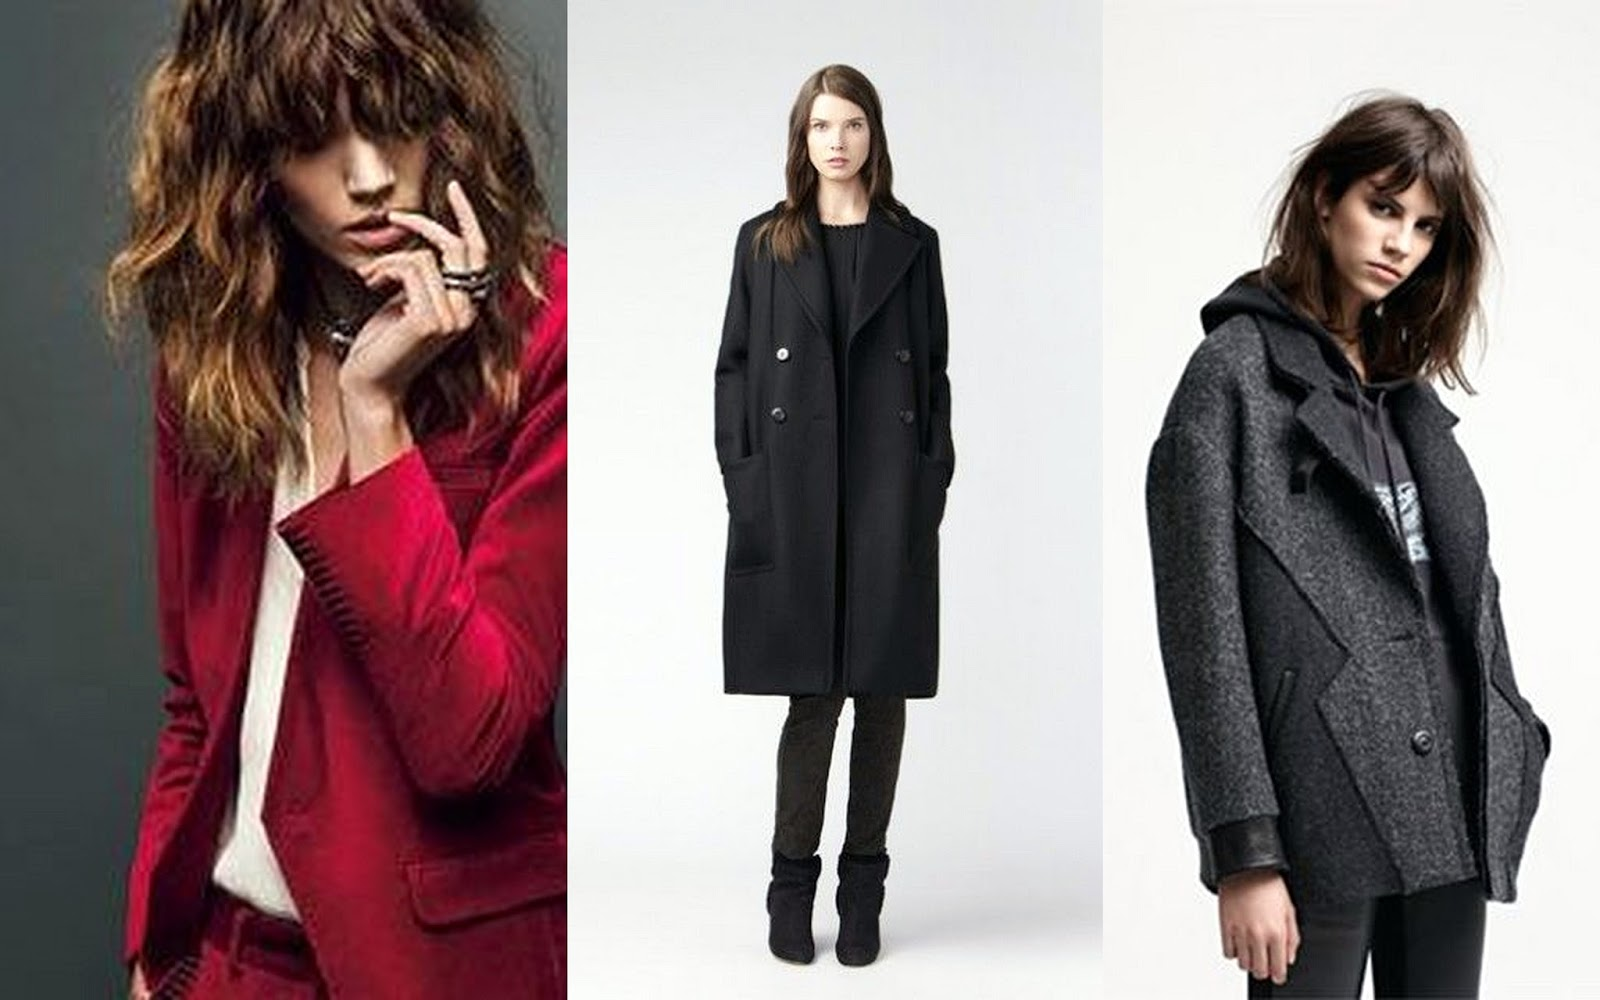 Zadig and Voltaire Freja, Gereard darel, Maje fall 13 lookbook, Maje coat, velvet jacket, black pointy boots